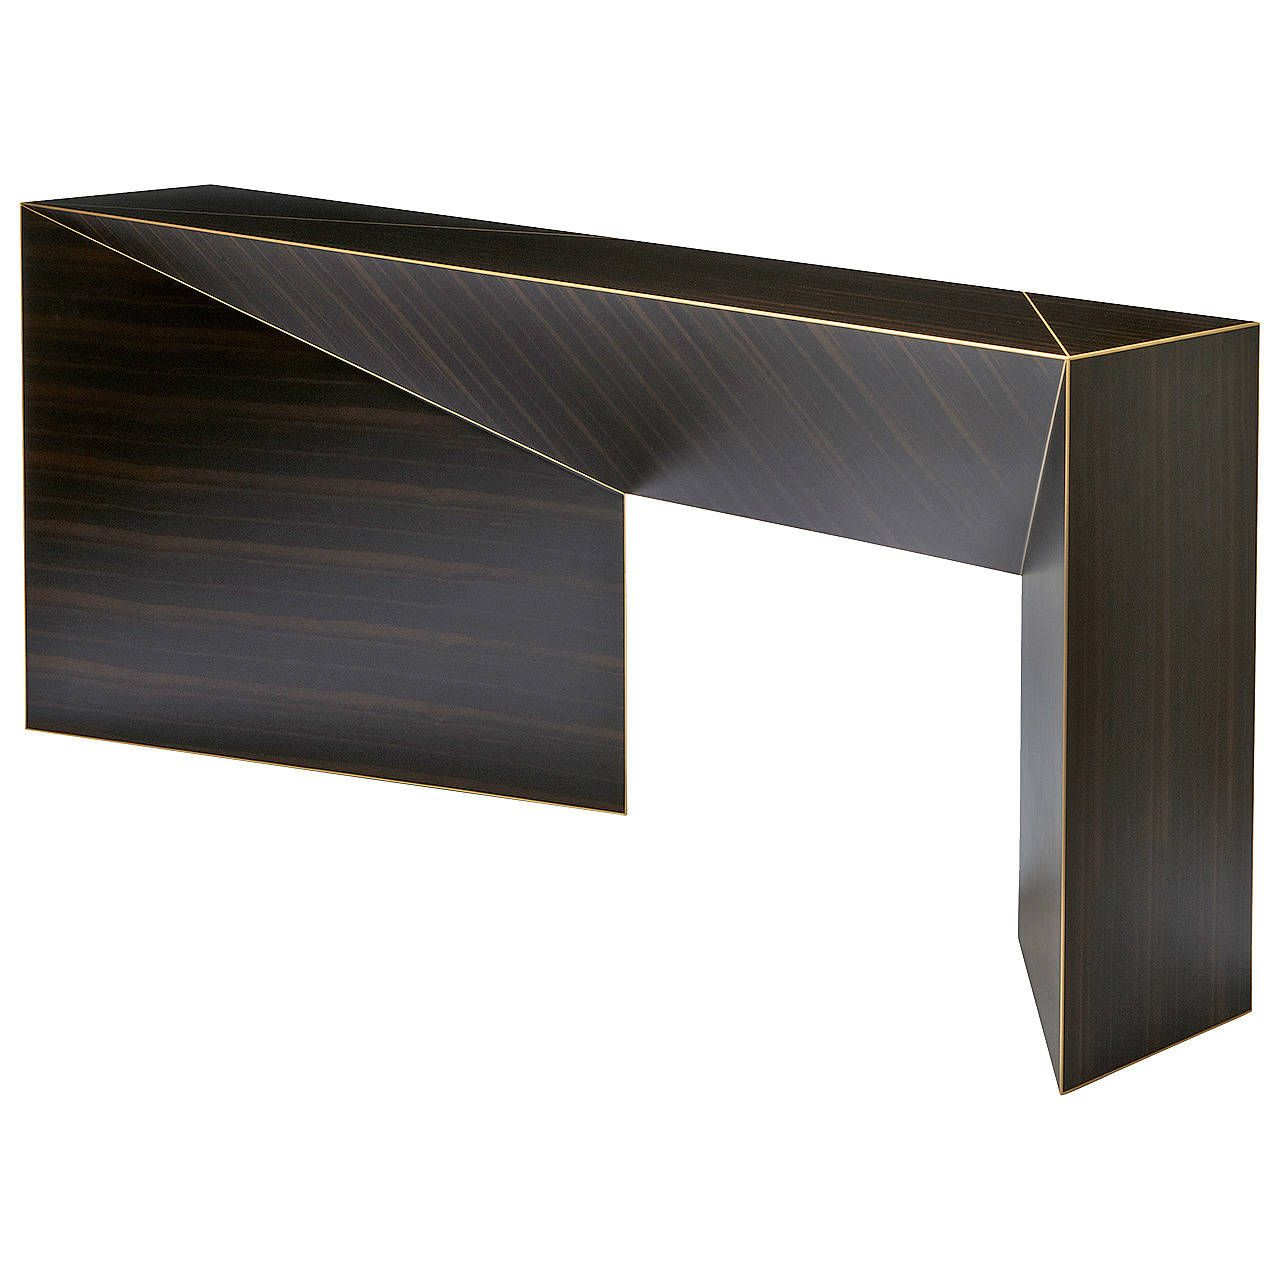 console vertigo by herv langlais for galerie negropontes table collection et th s. Black Bedroom Furniture Sets. Home Design Ideas